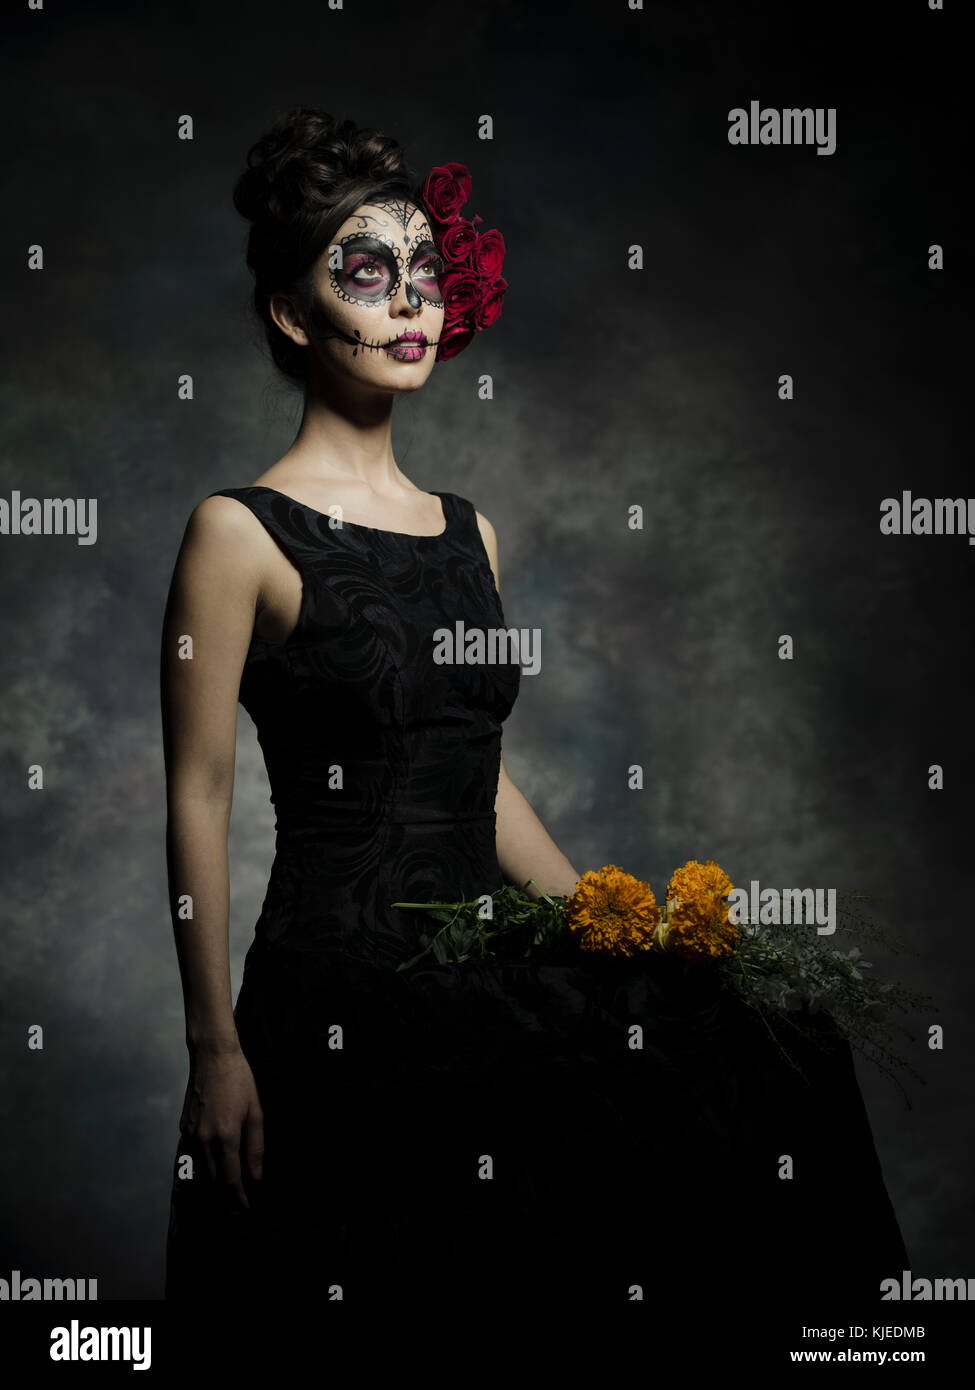 Beautiful Mexican American woman celebrating Día de los Muertos ( Día de Muertos ) is the Mexican holiday also known as Day of the Dead with skull makeup and roses in the style of Catrina. Stock Photo